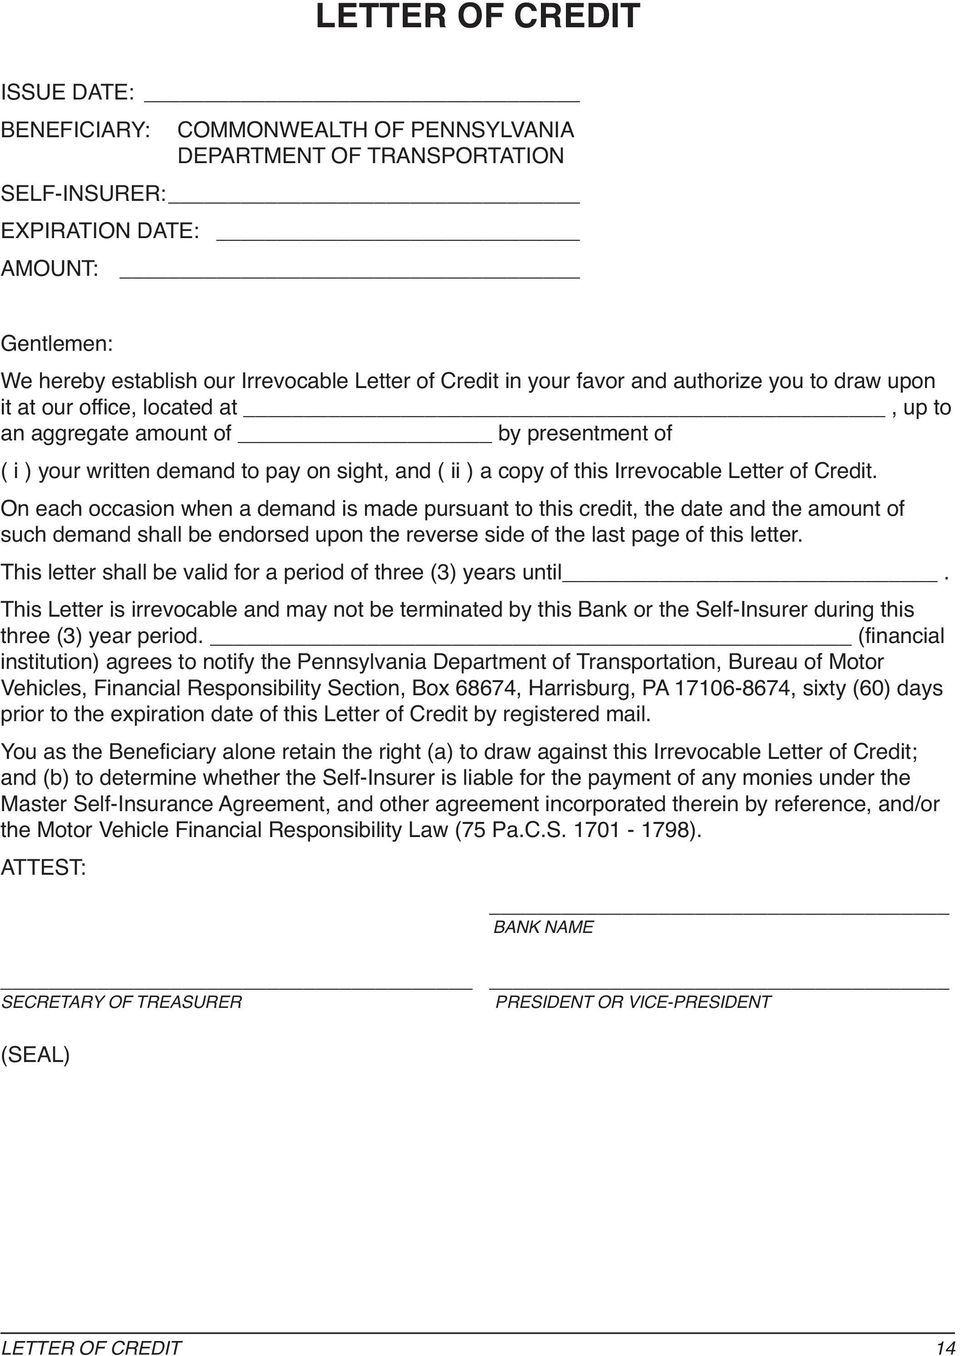 Irrevocable Letter of Credit.